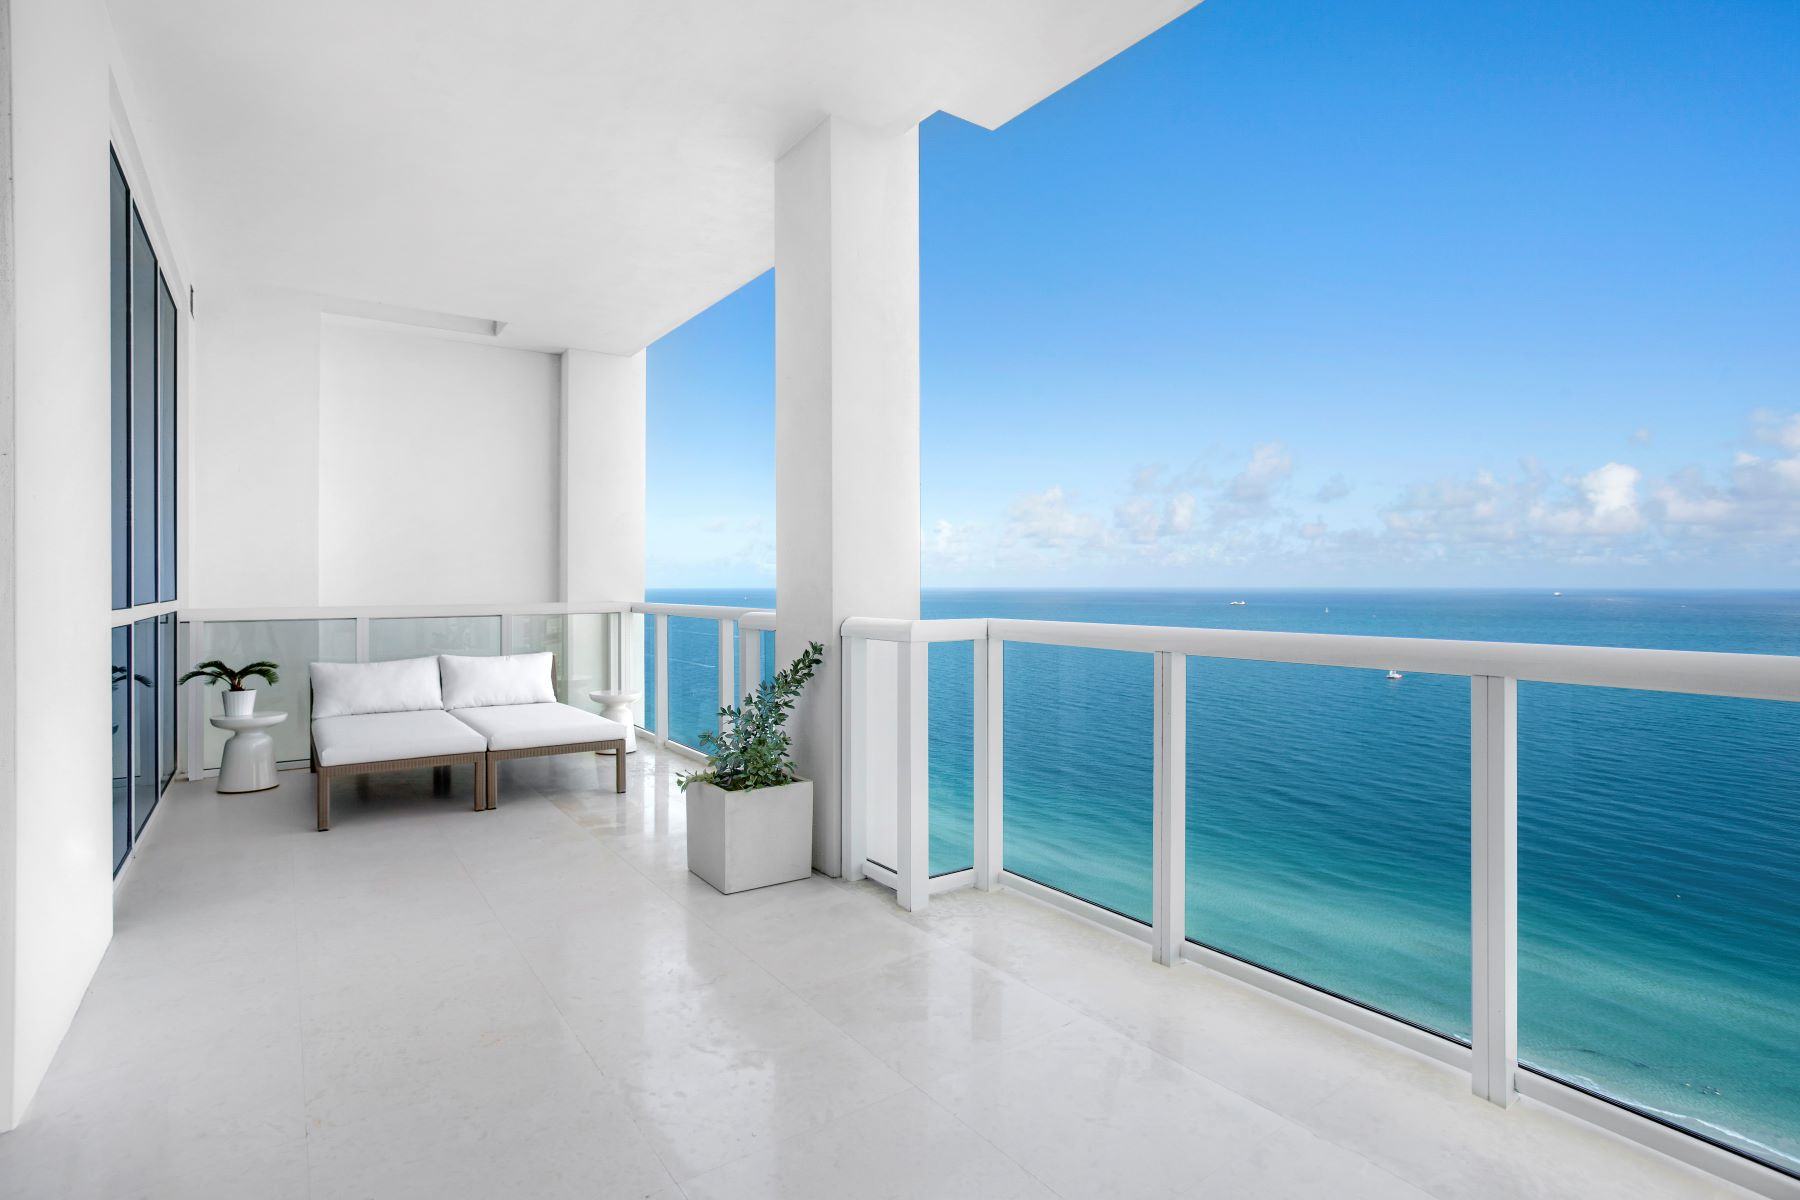 Condominium for Sale at 50 S Pointe Dr 50 S Pointe Dr 3501, Miami Beach, Florida, 33139 United States